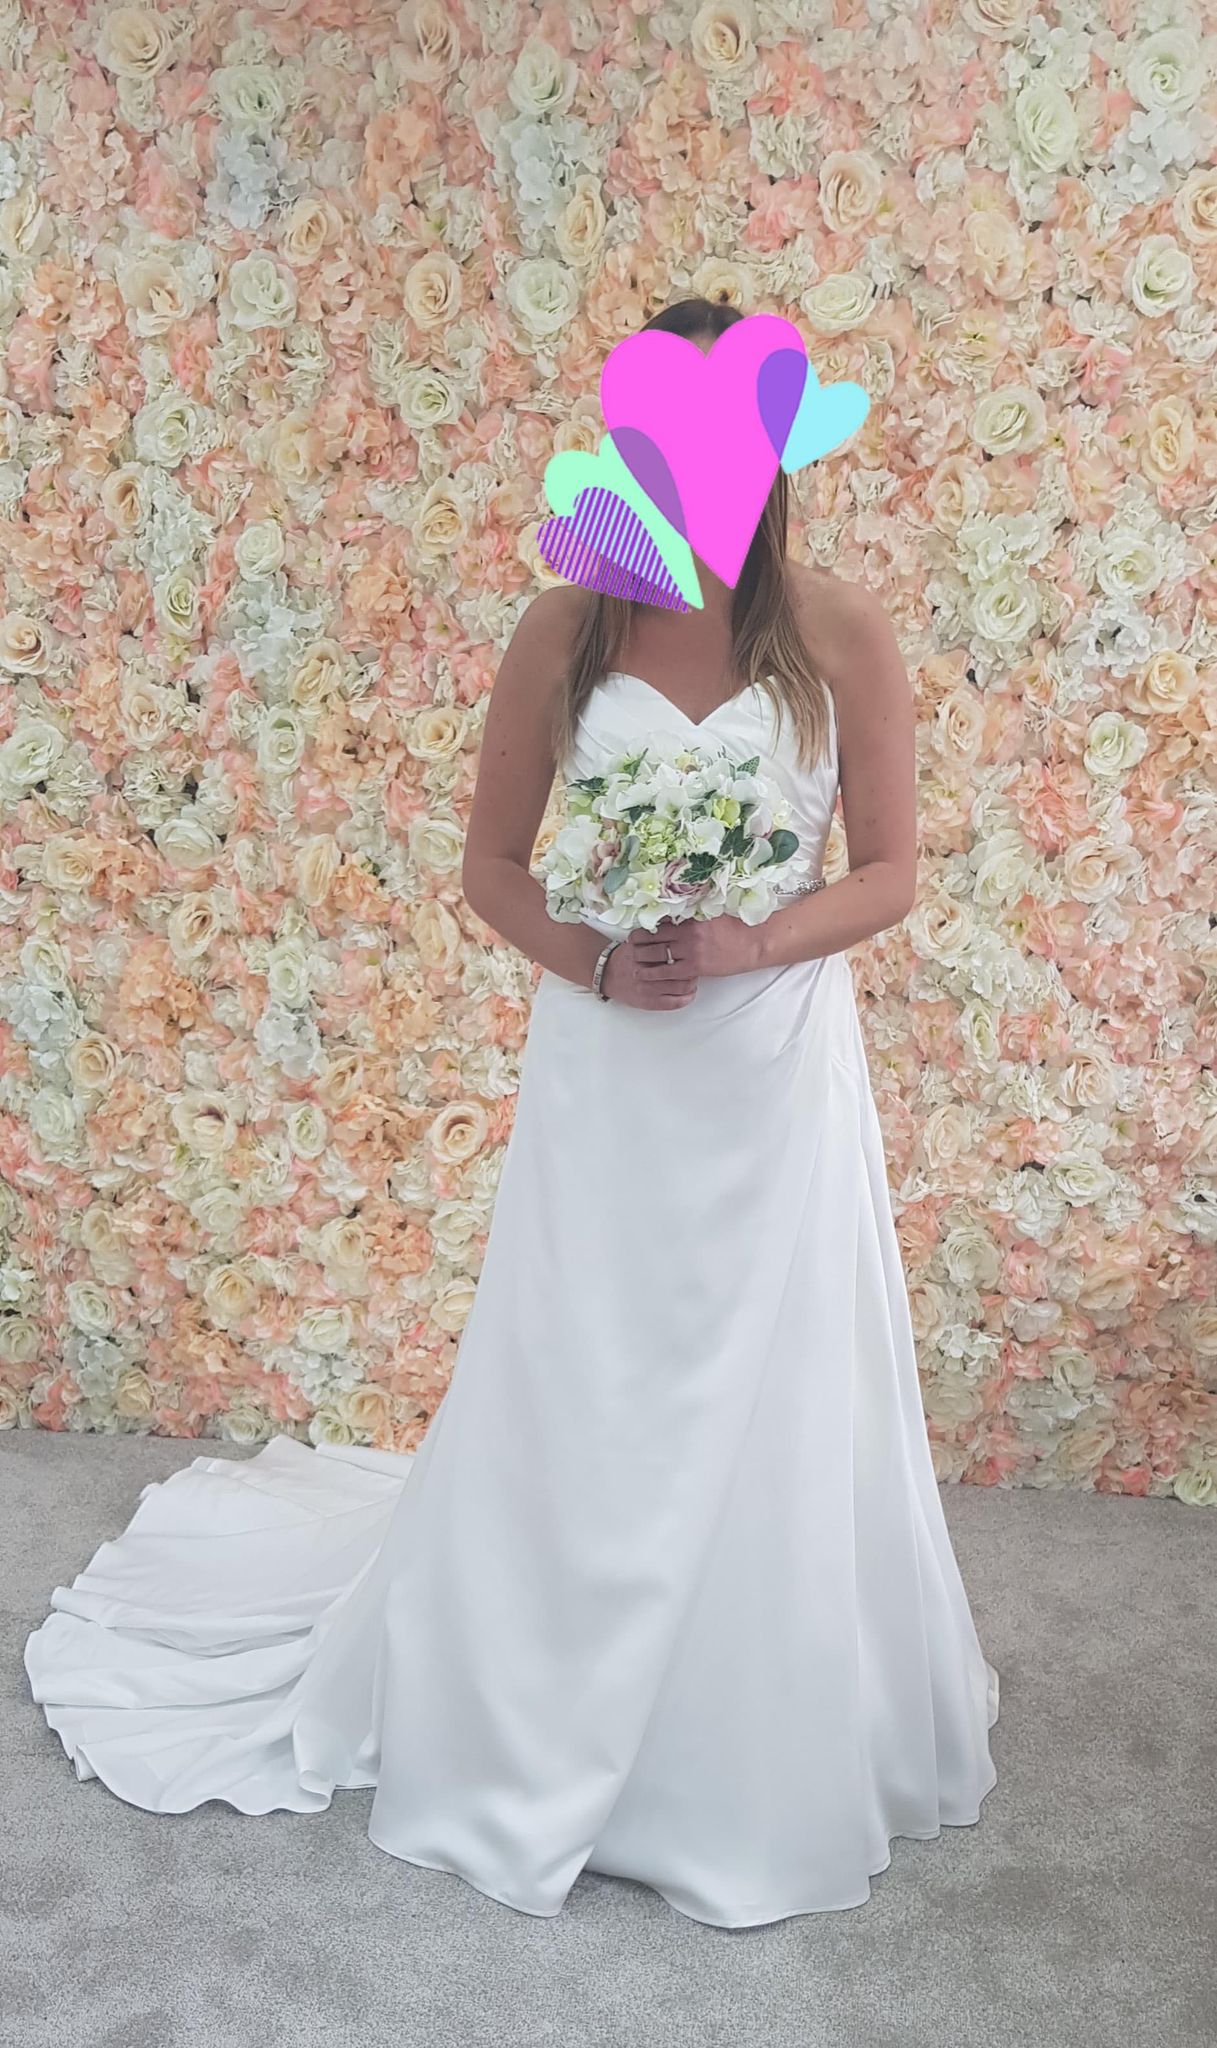 Lovely Flower Wall and bride